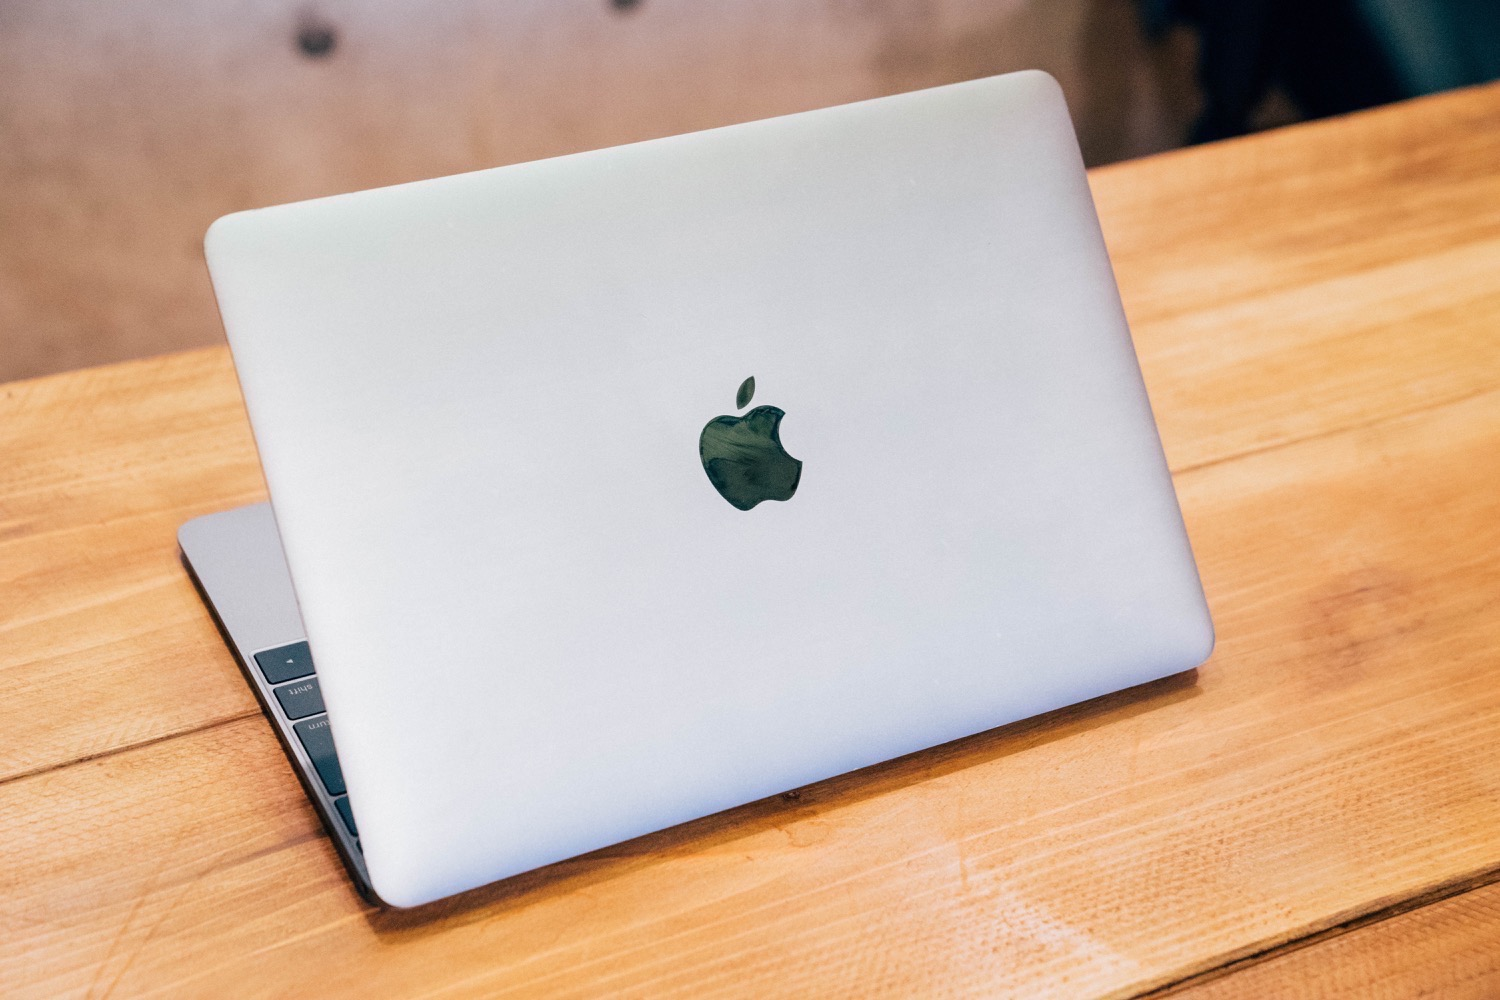 Macbook customize 8